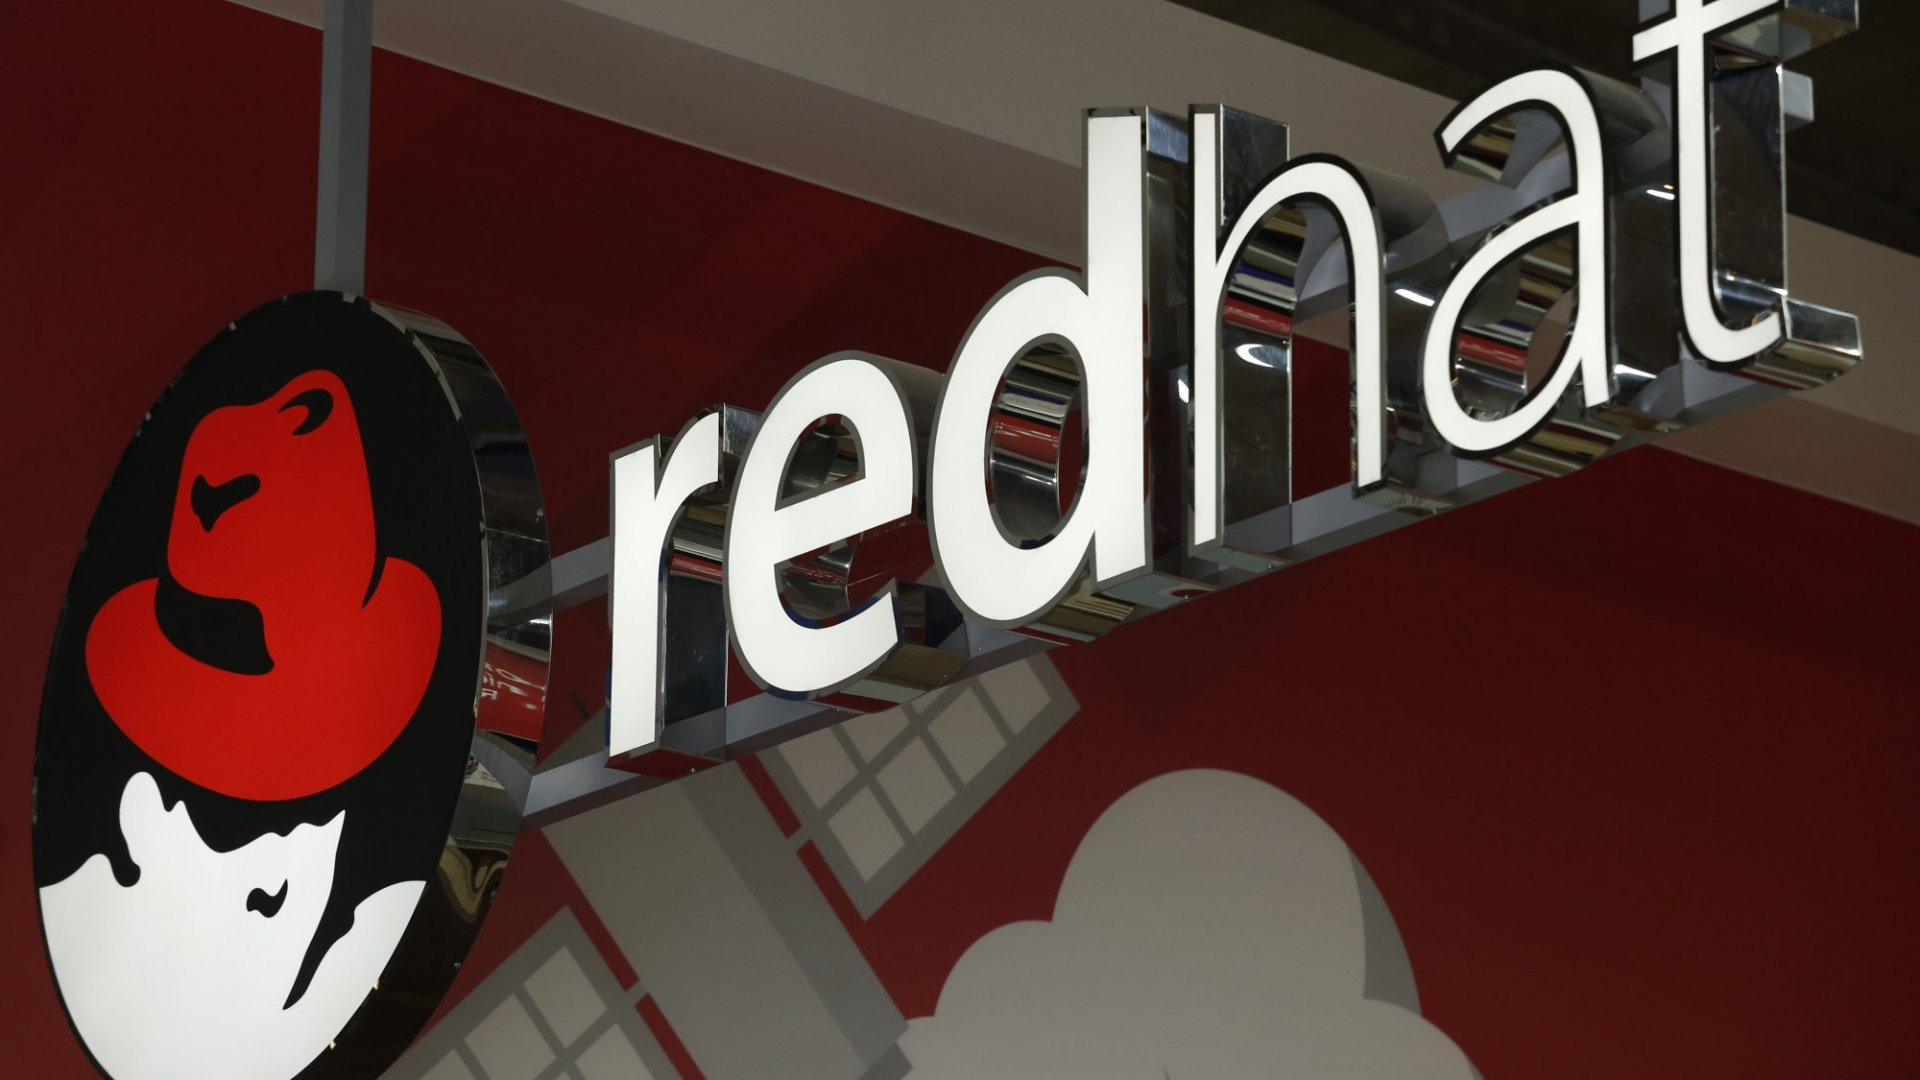 How Red Hat Helped Make Open Source A Global Phenomenon